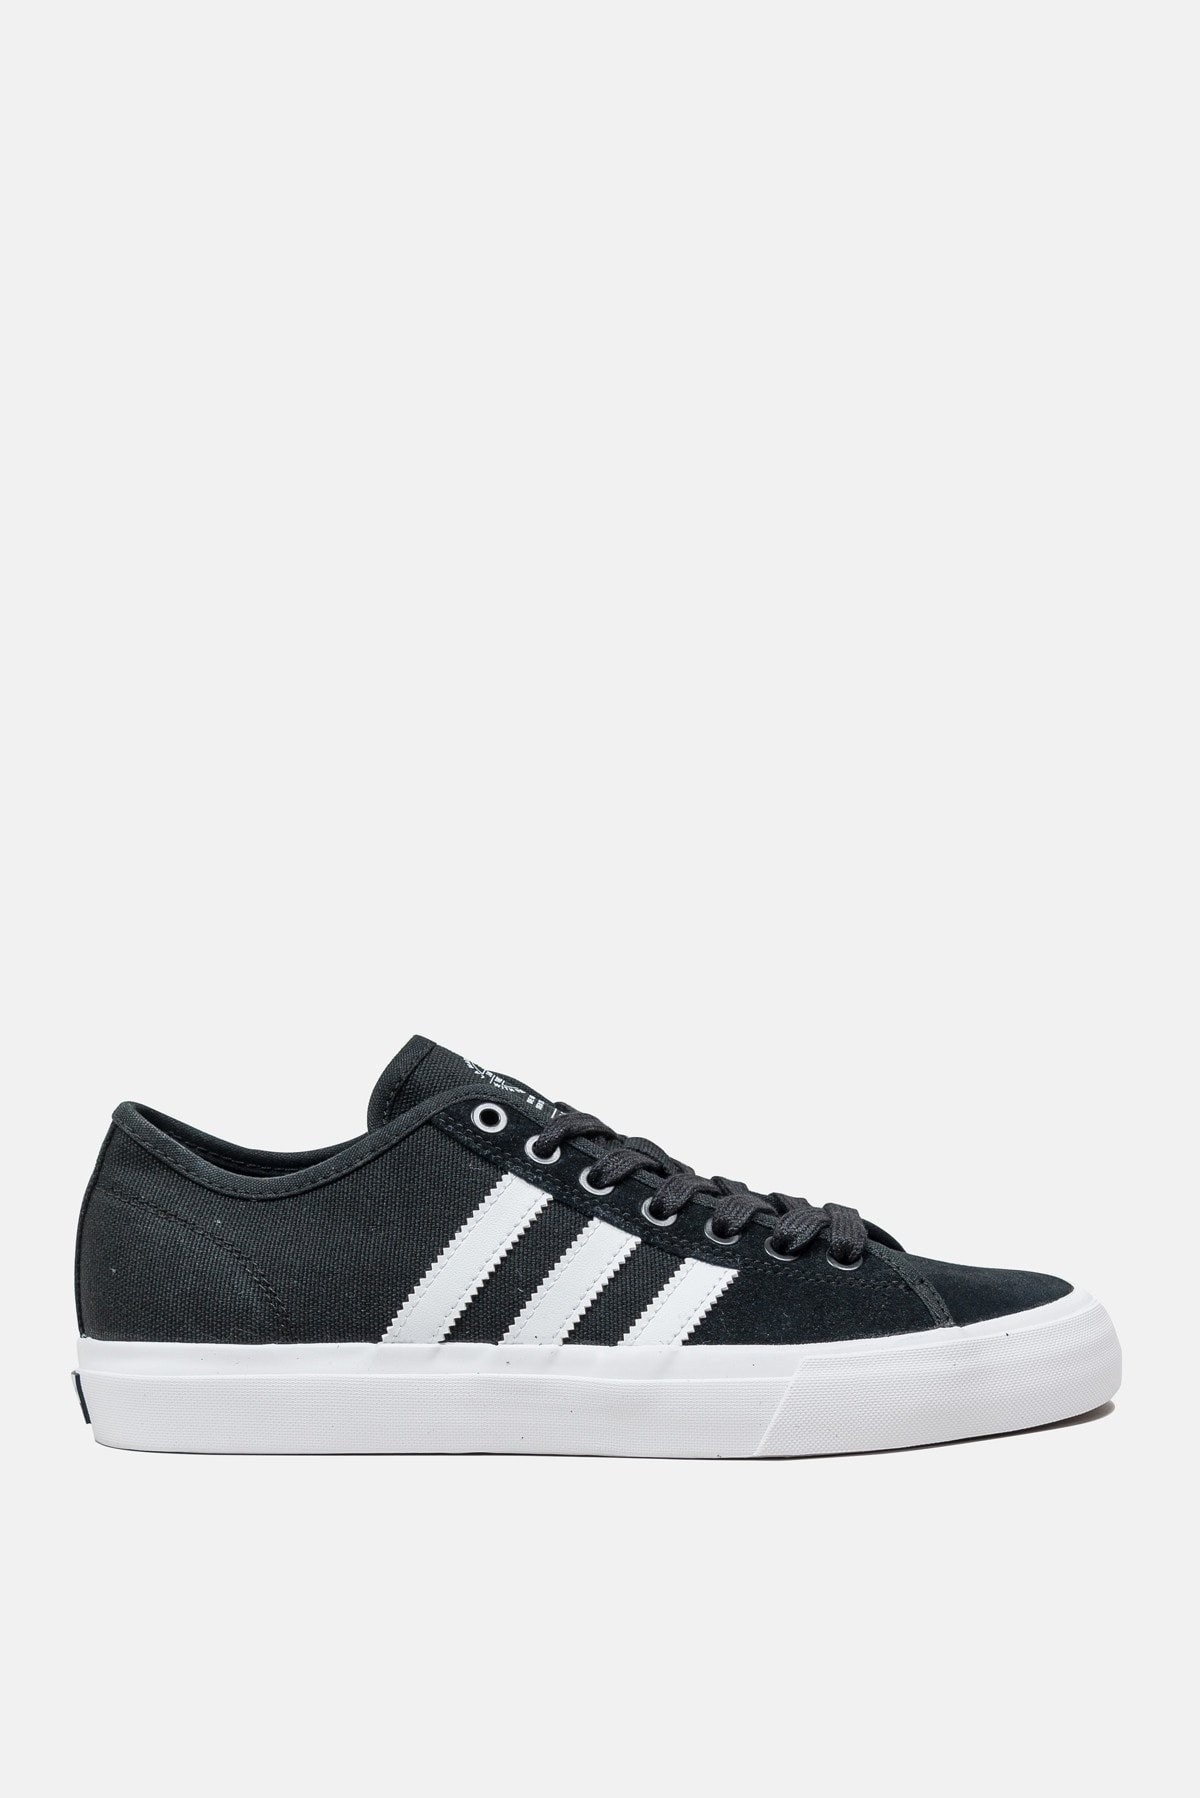 Adidas Matchcourt RX Shoes available from Priory